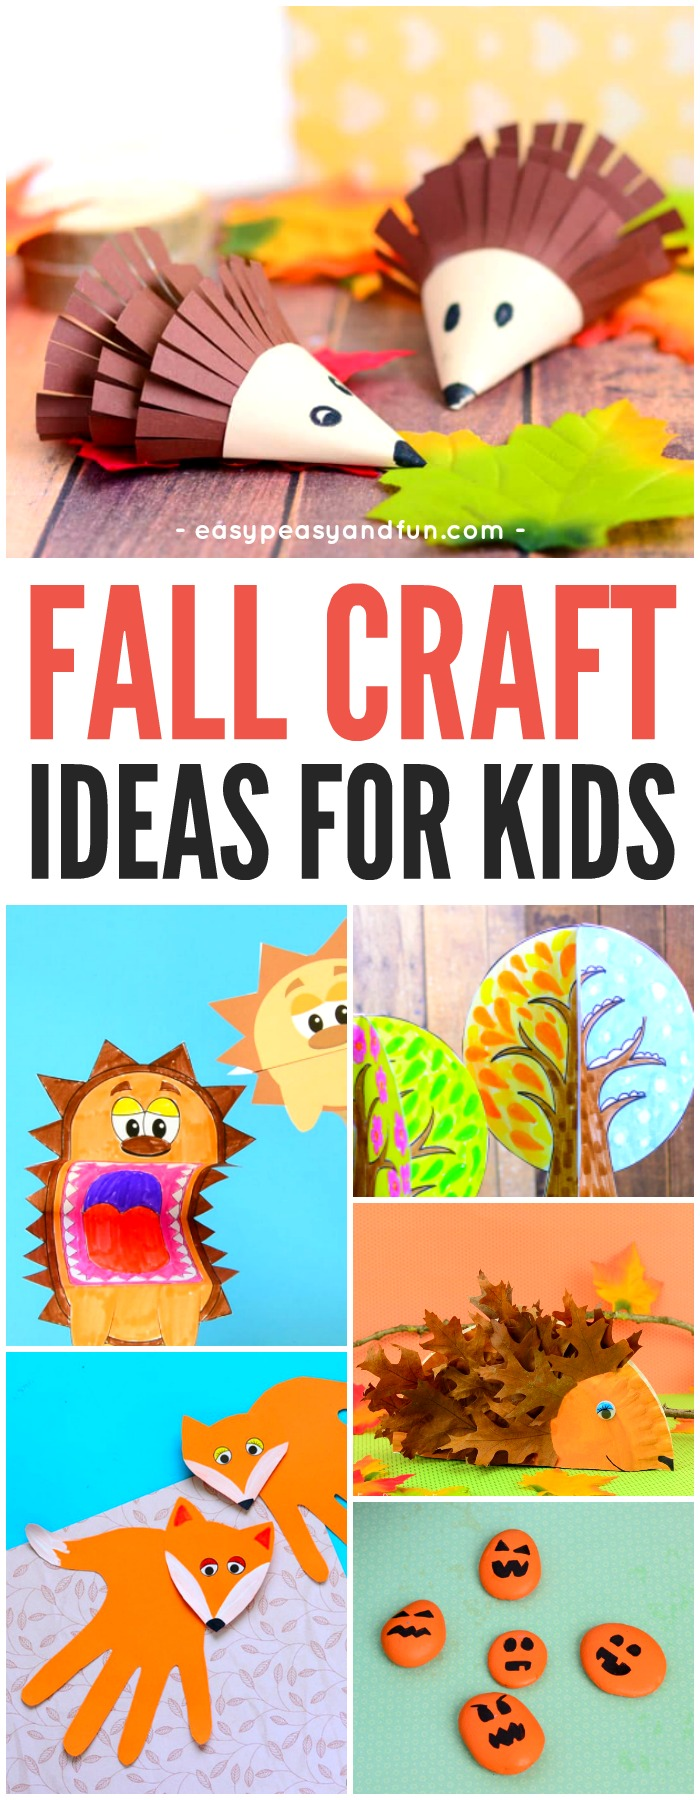 Easy Arts And Crafts Ideas For Kids Part - 35: Fall Crafts For Kids. Fall Art And Craft Ideas For Kids With Printable Craft  Templates